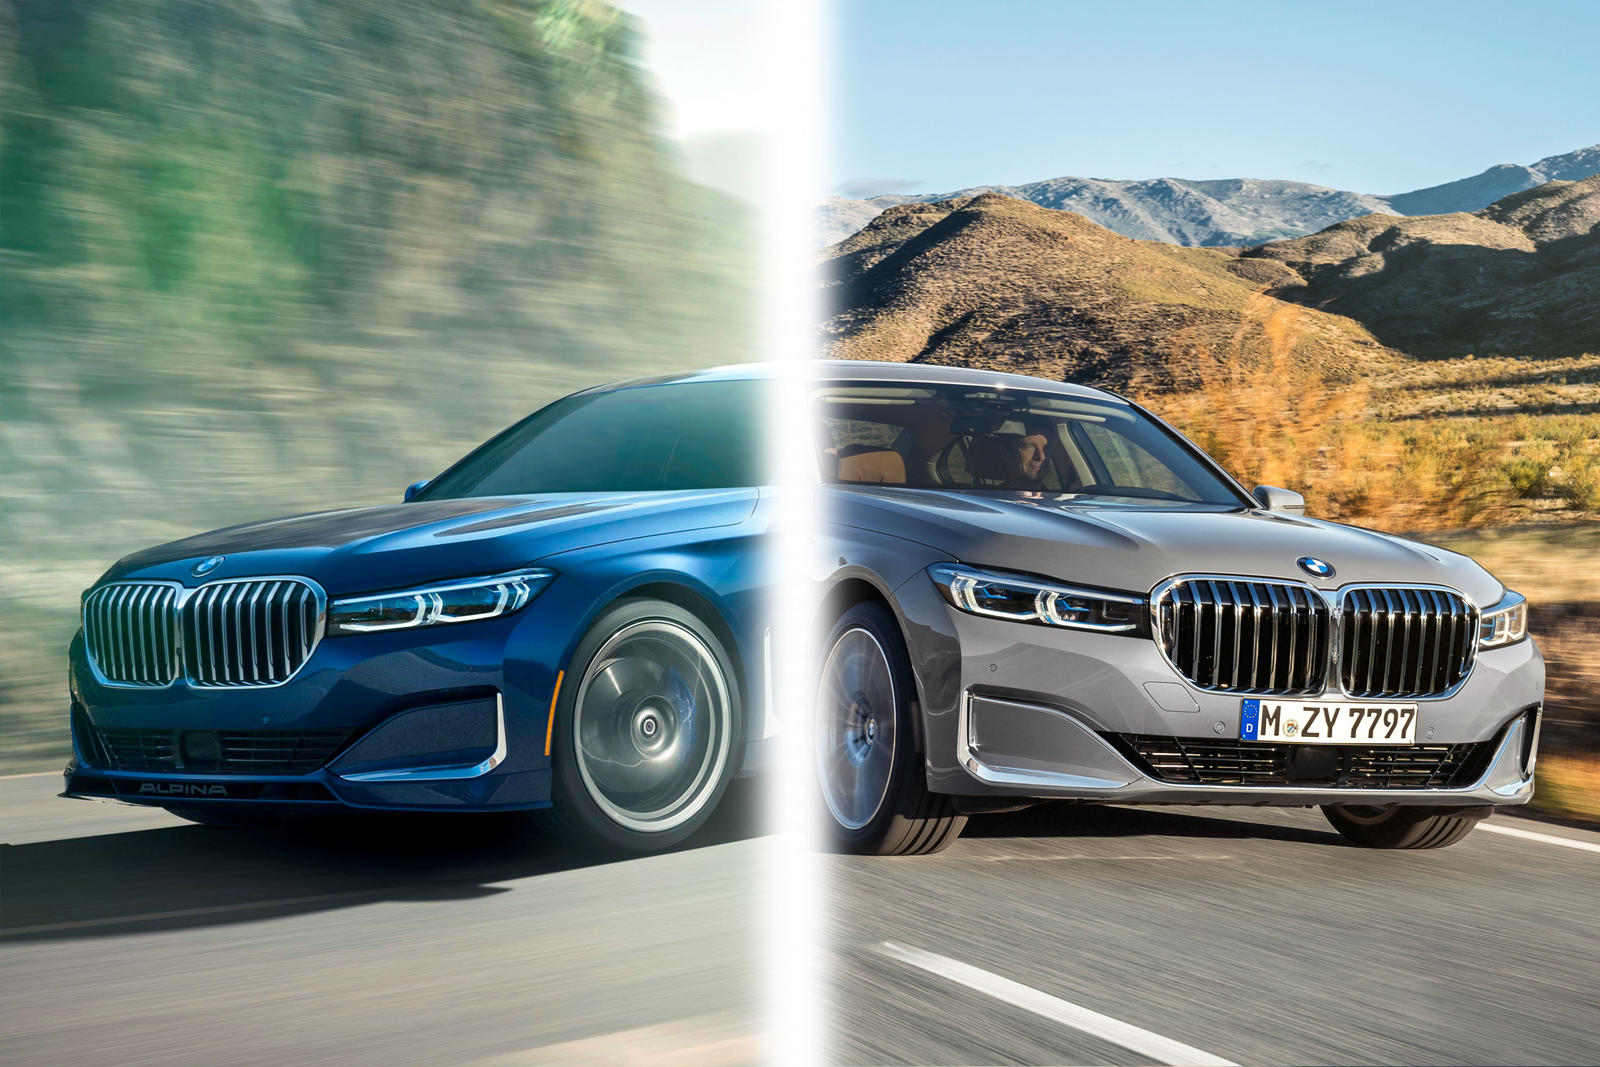 2020 Bmw 7 Series Vs Alpina B7 Which Would You Choose Carbuzz